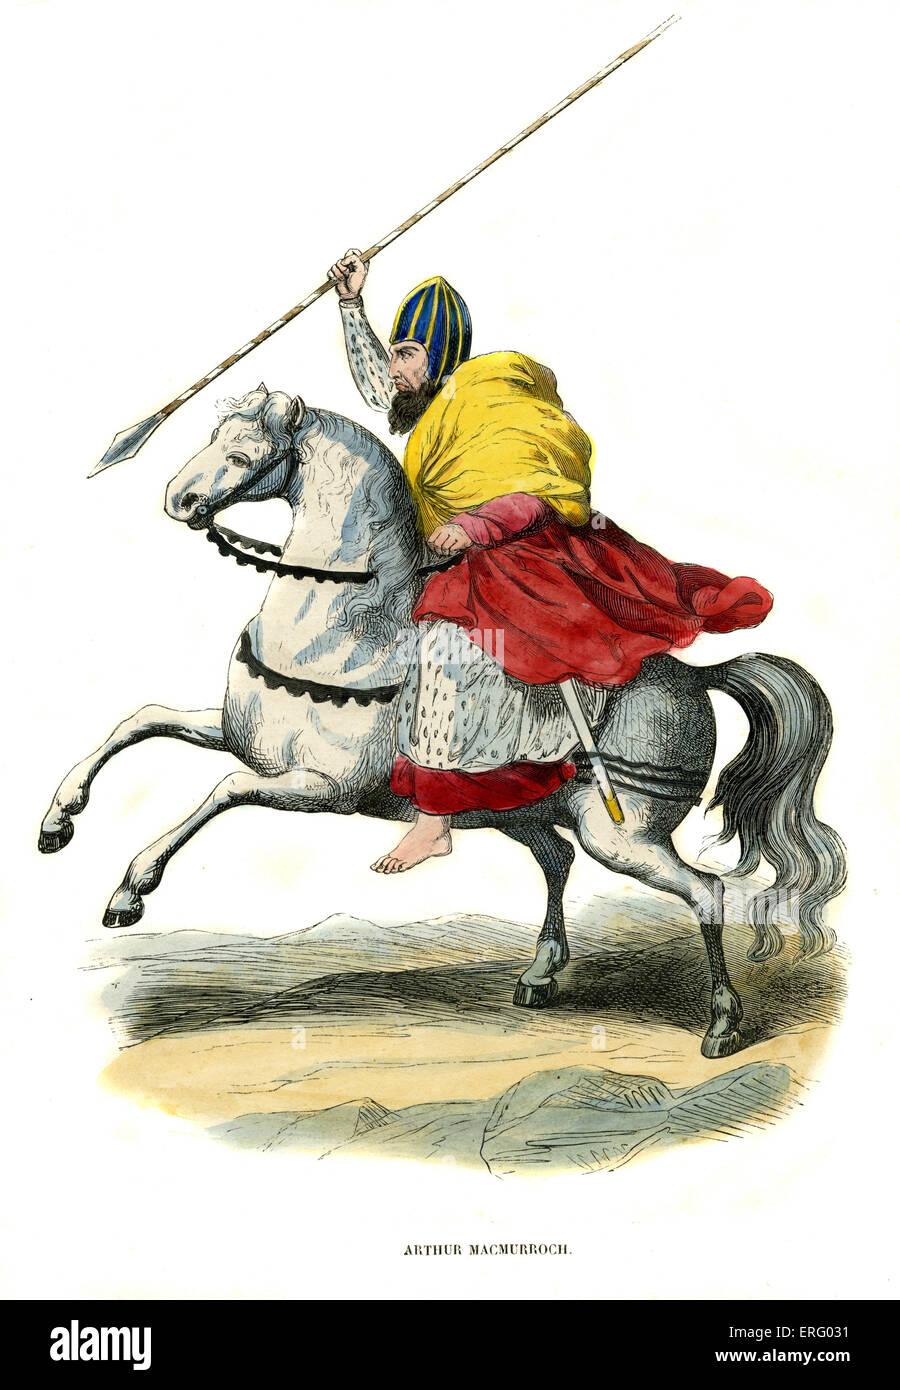 Arthur Macmurrough /  Macmurroch,  King of Leinster Irish Chieftain  riding high on his mighty horse.  Hand coloured - Stock Image